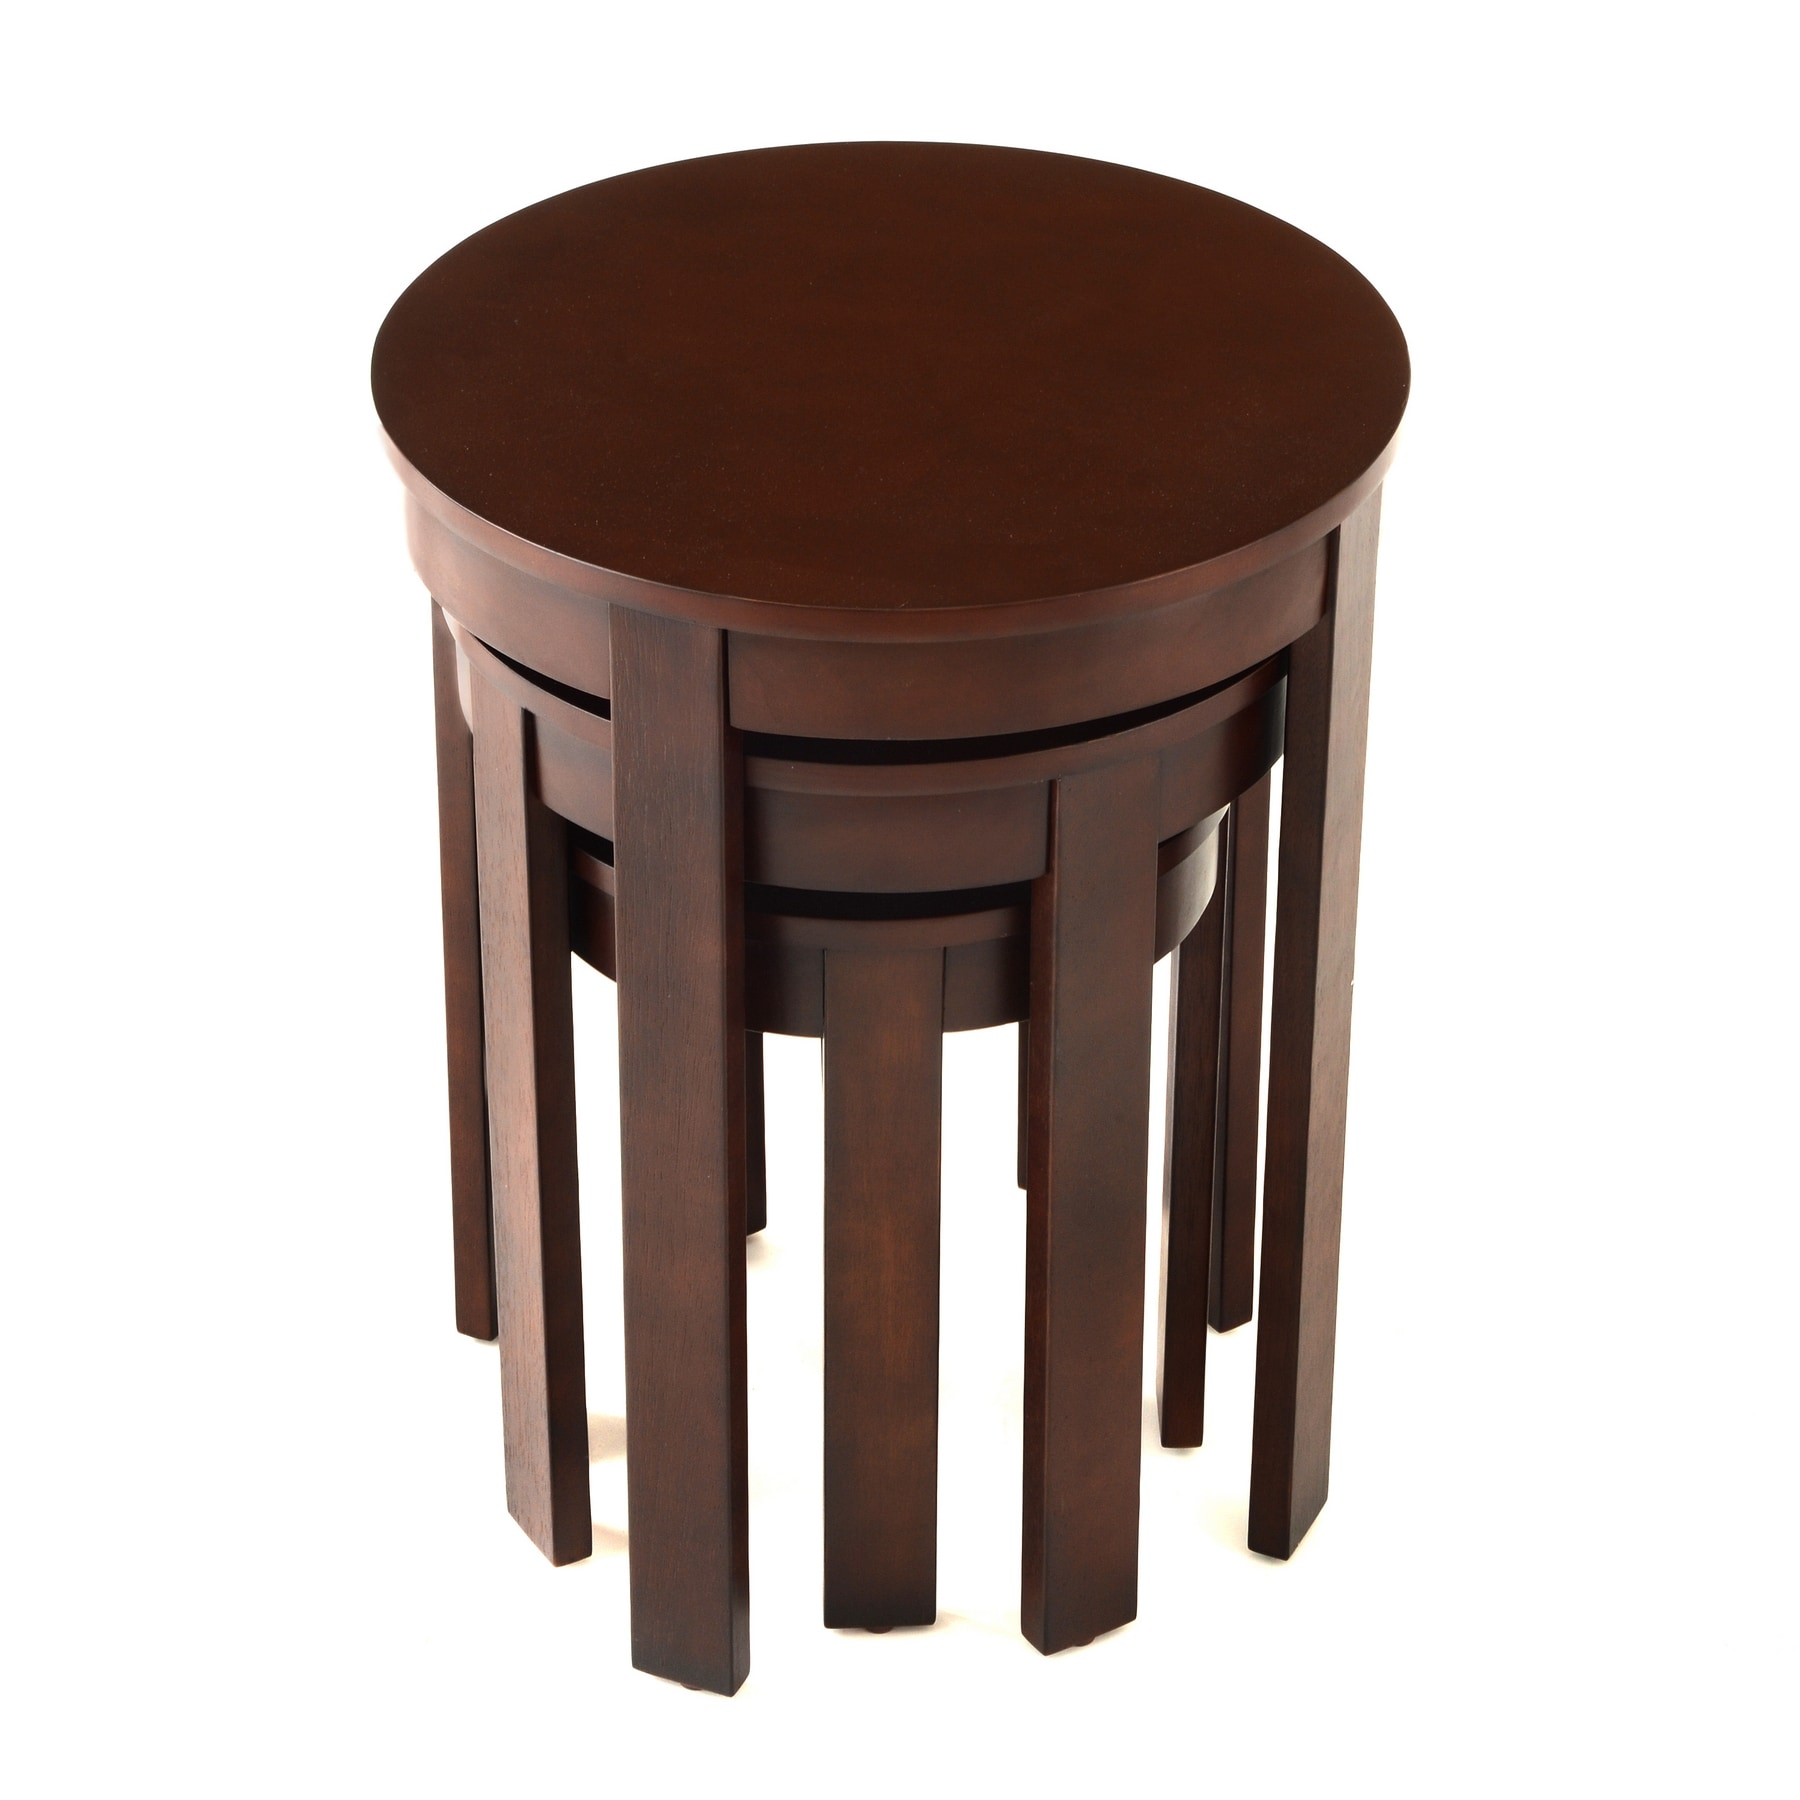 Nesting Tables Coffee, Sofa & End Tables - Affordable Accent Tables - Overstock.com